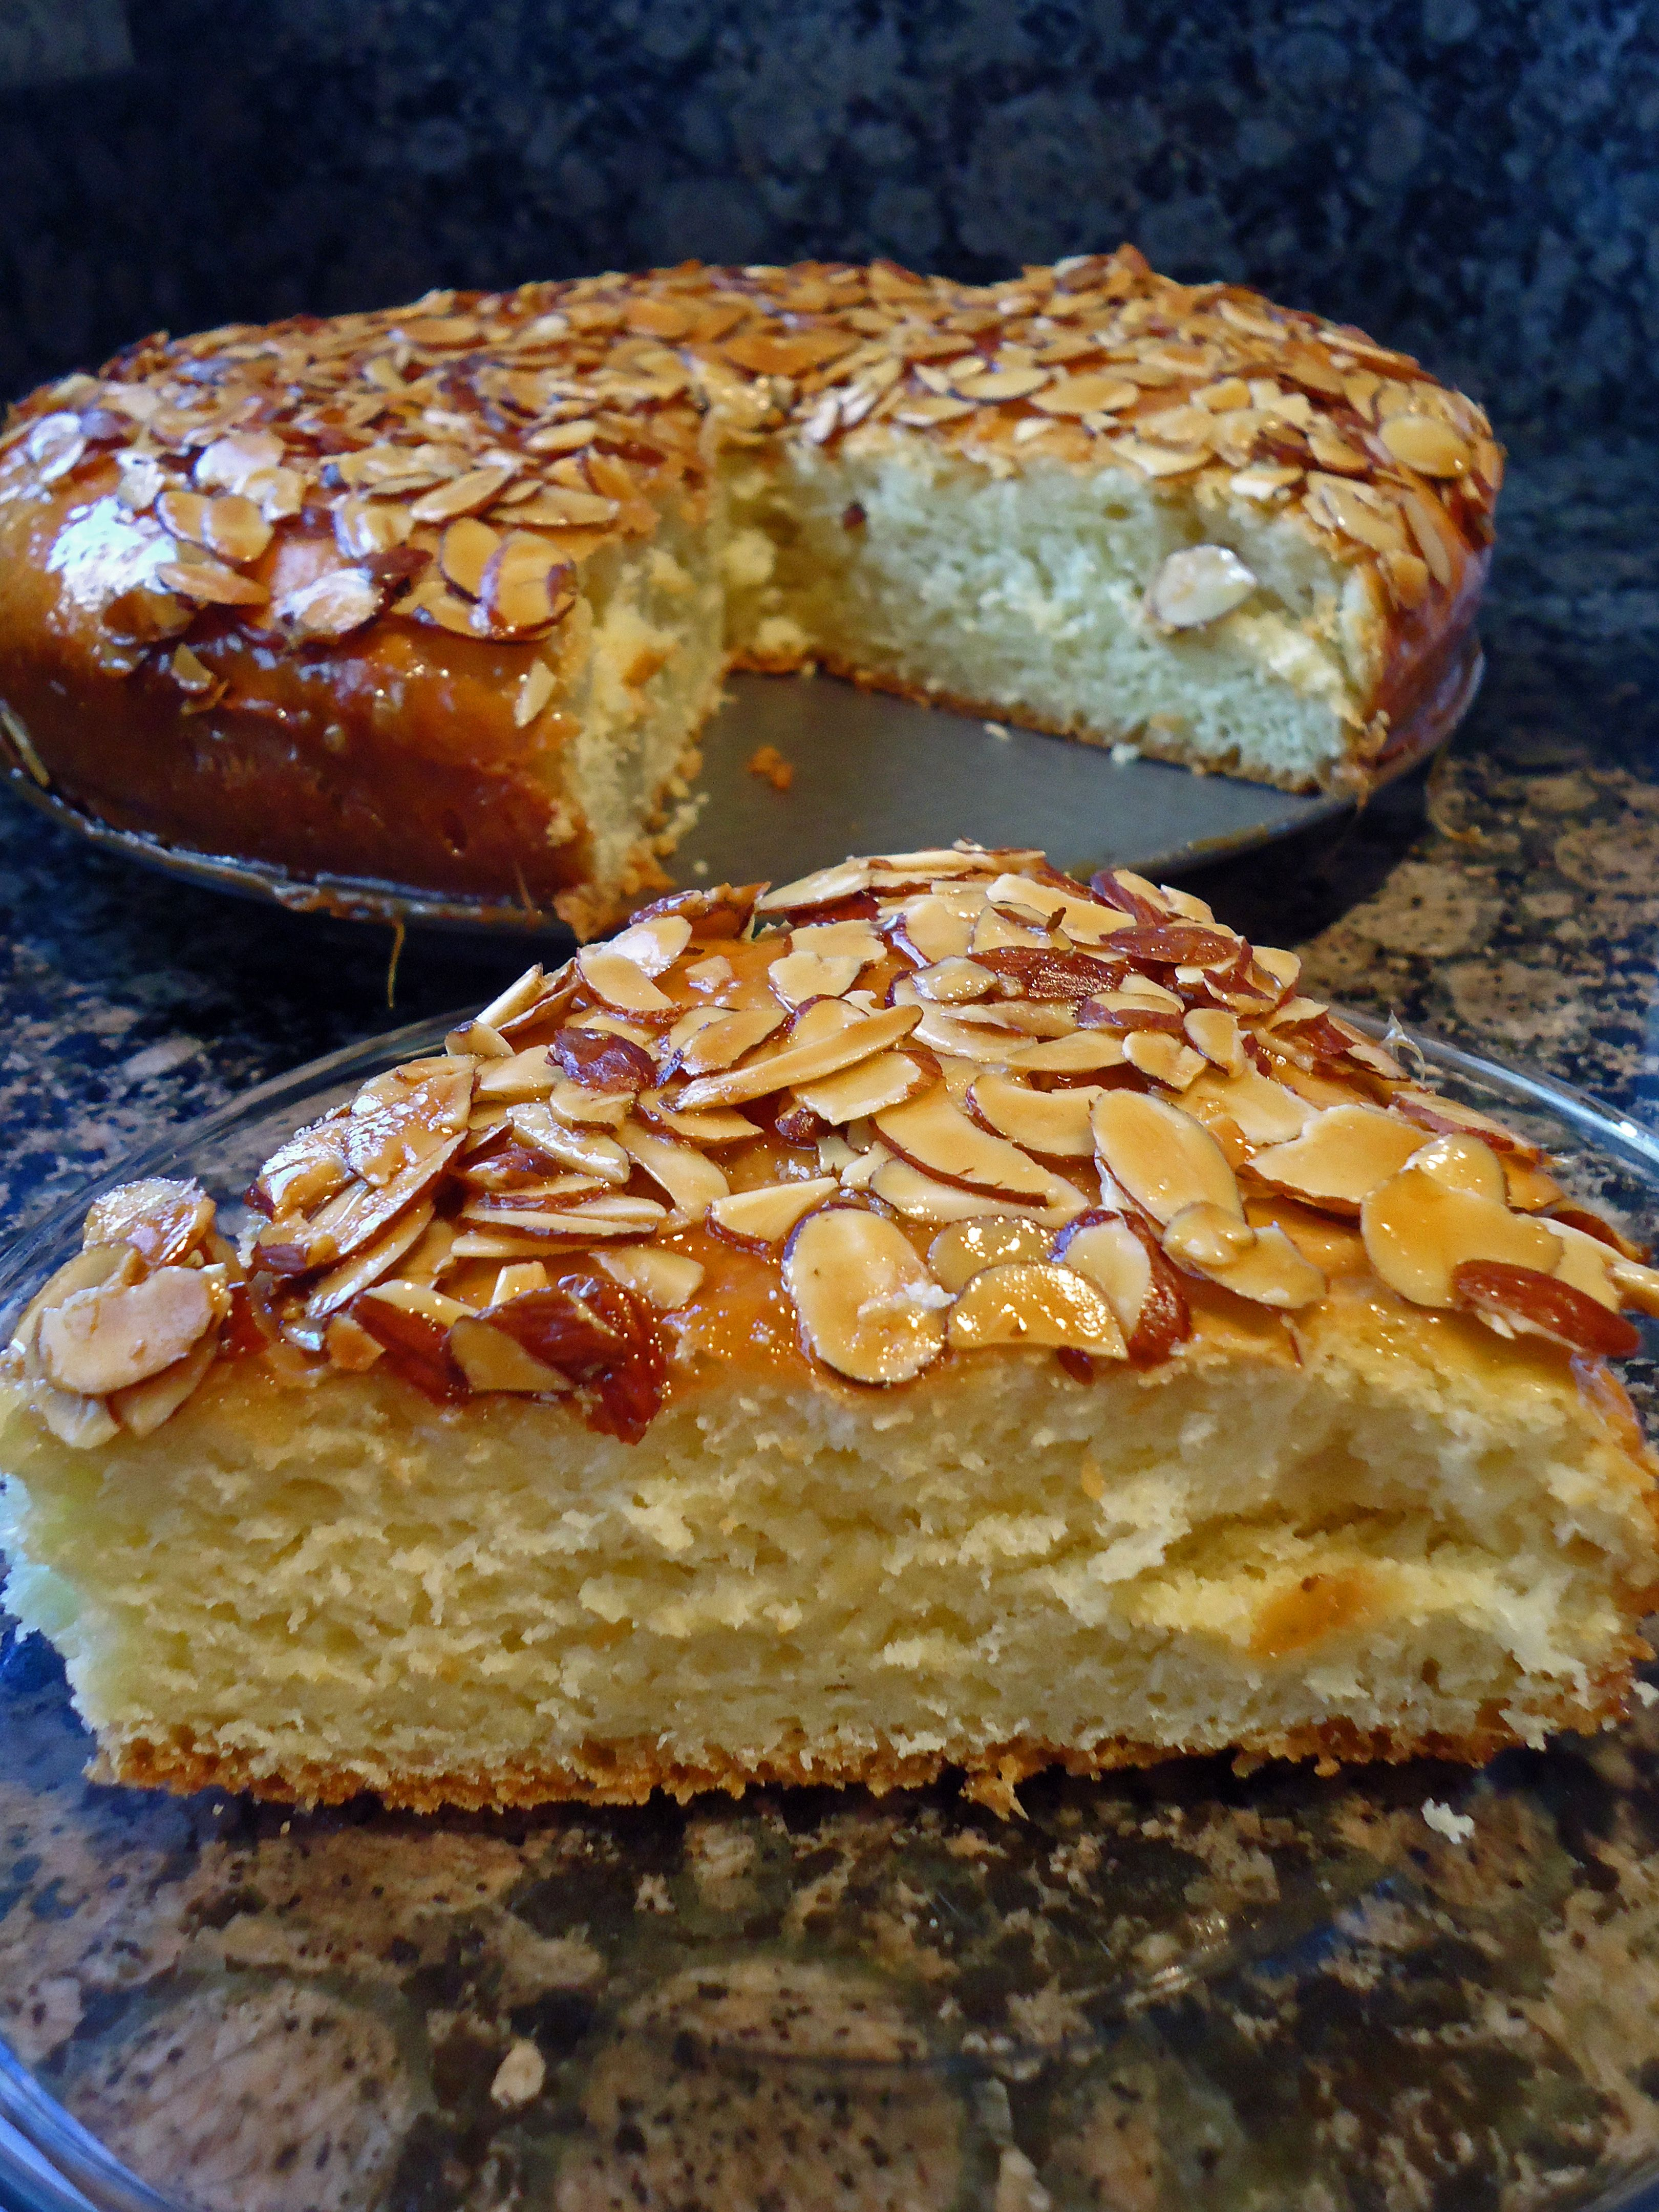 Honey Almond Coffee Cake - Tara's Multicultural Table